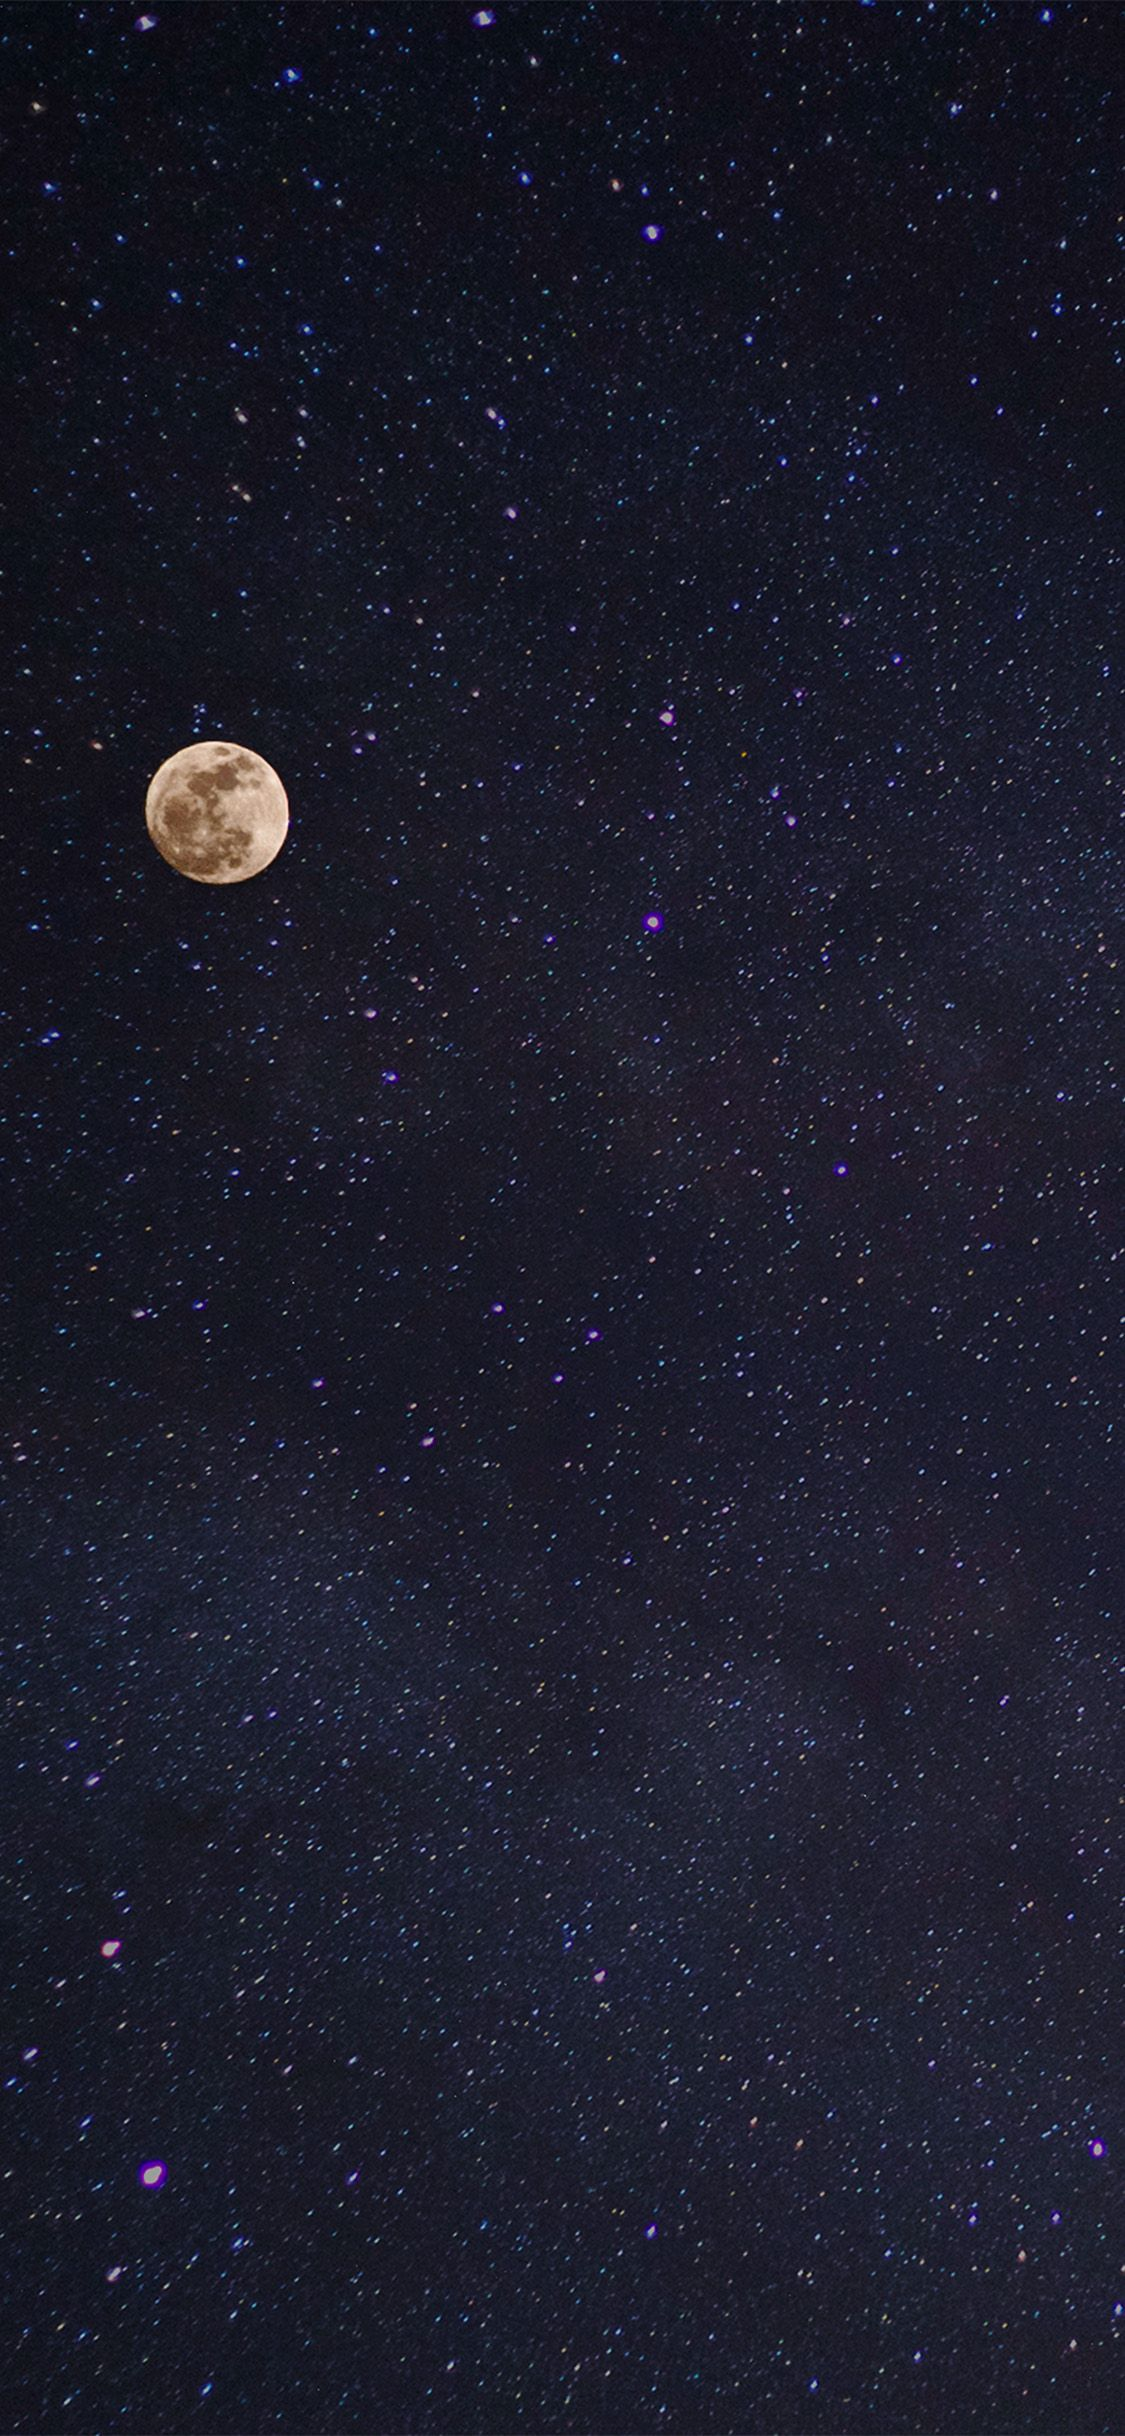 Nv76 Moon Night Space Star Nature Via Http Iphonexpapers Com Wallpapers For Iphone X Iphone Wallpaper Night Sky Iphone Wallpaper Night Iphone Wallpaper Sky